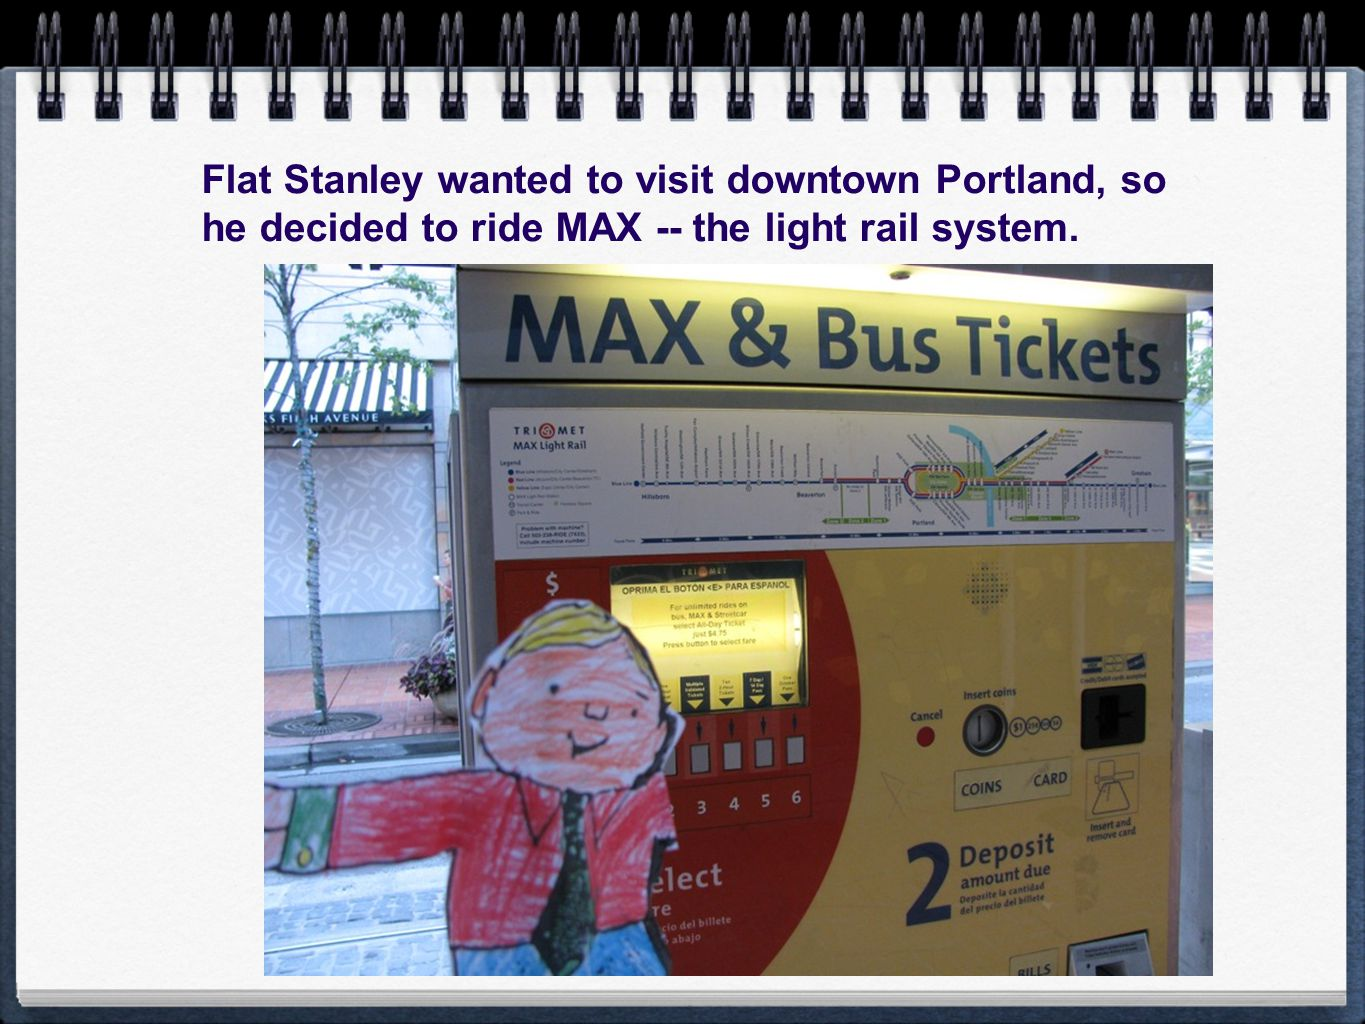 Flat Stanley wanted to visit downtown Portland, so he decided to ride MAX -- the light rail system.